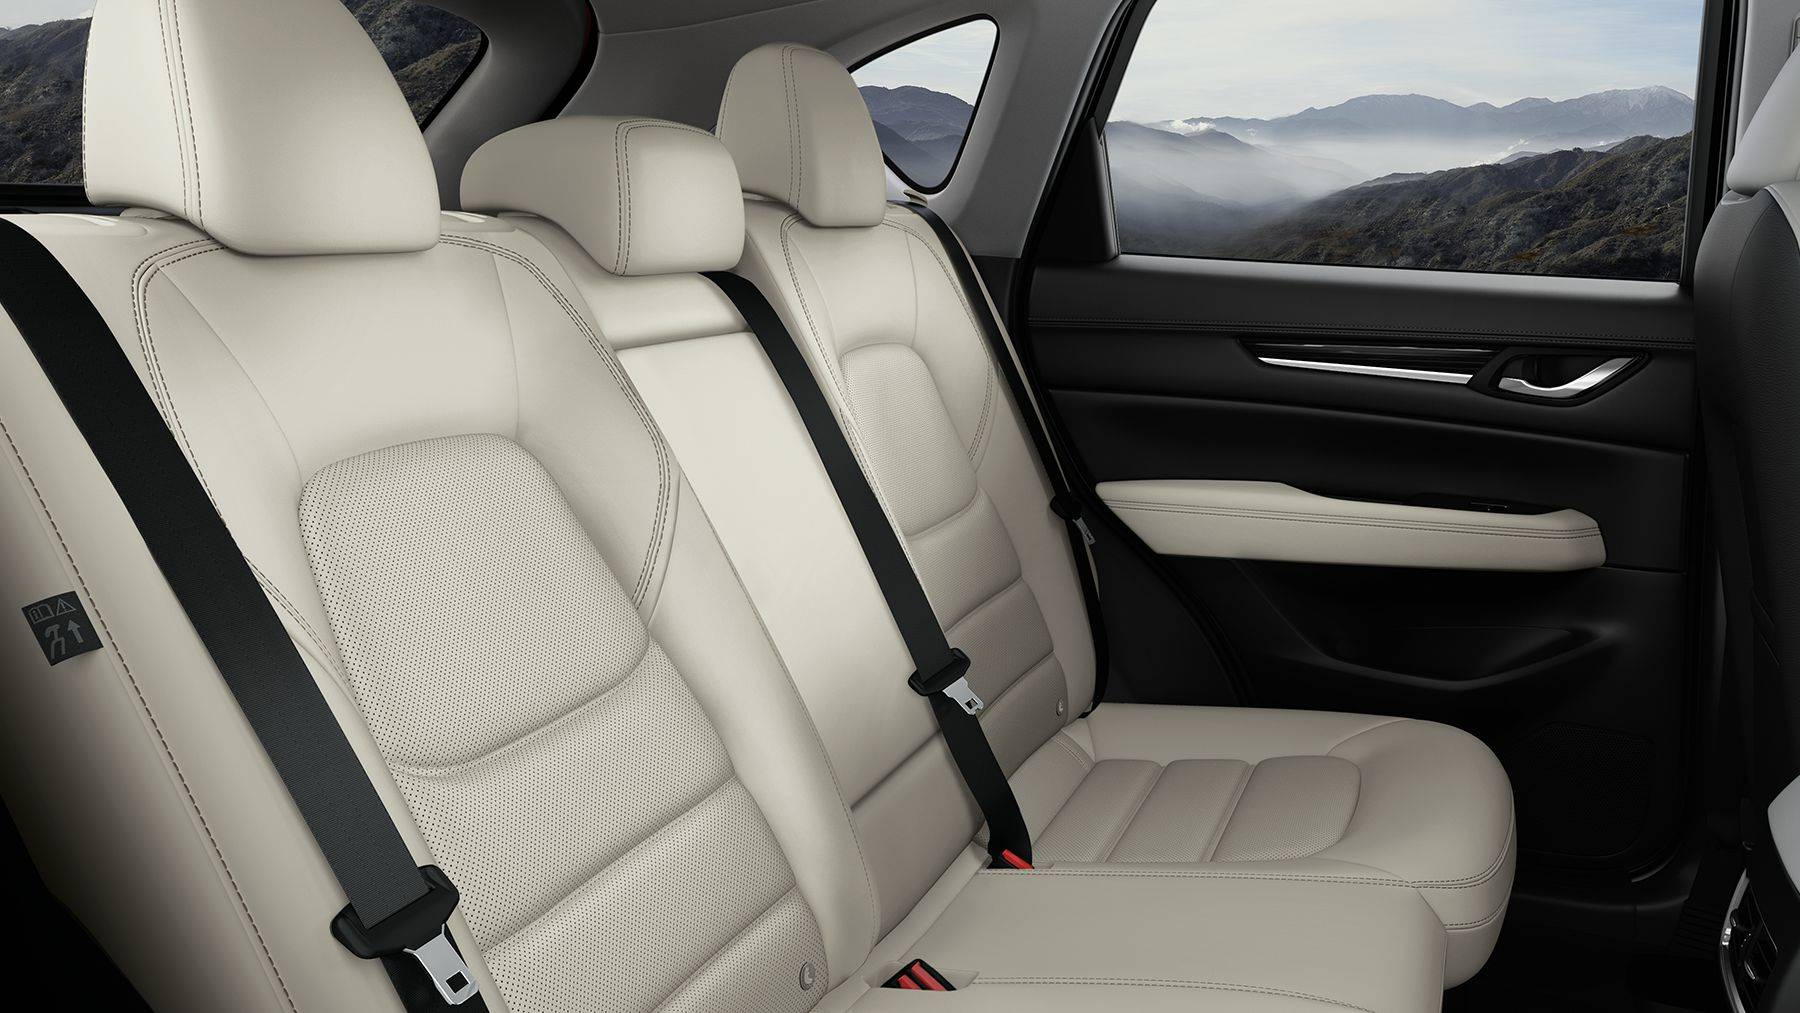 Spacious Seating in the Mazda CX-5